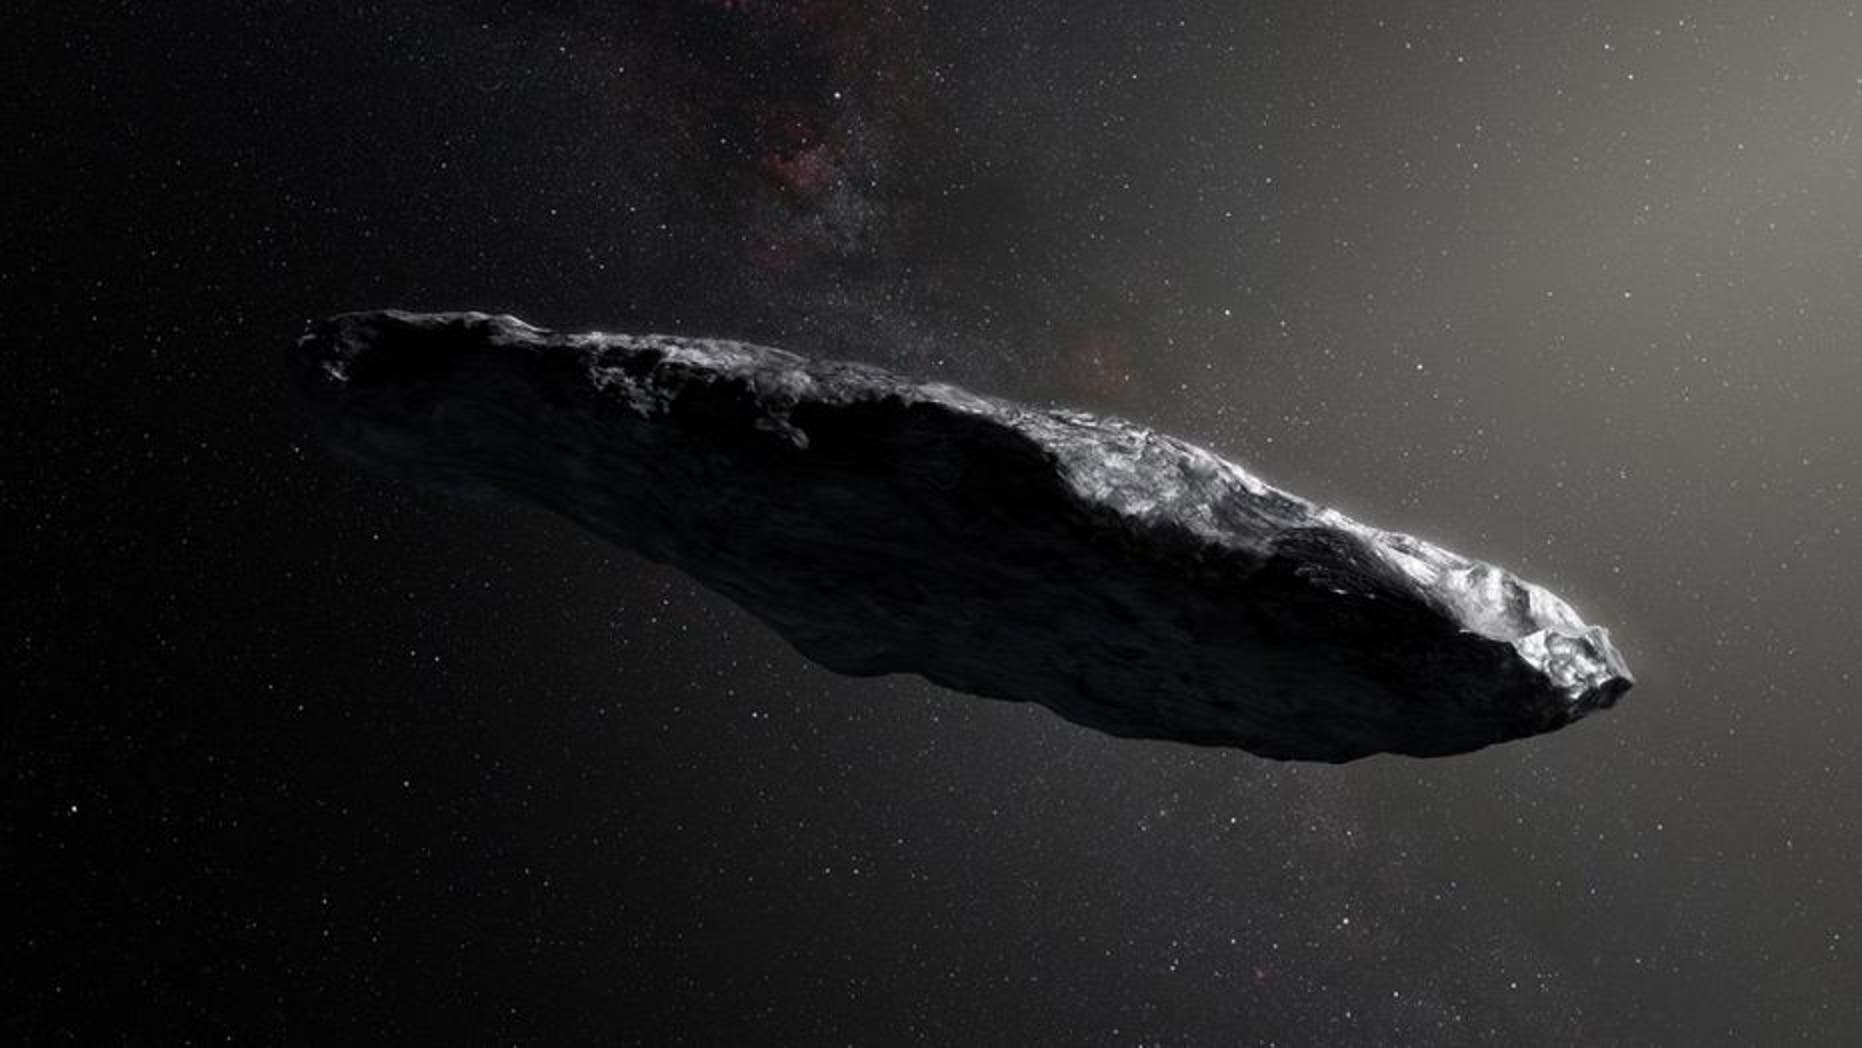 Oumuamua May Have Been an Alien Spaceship, Astronomers Say